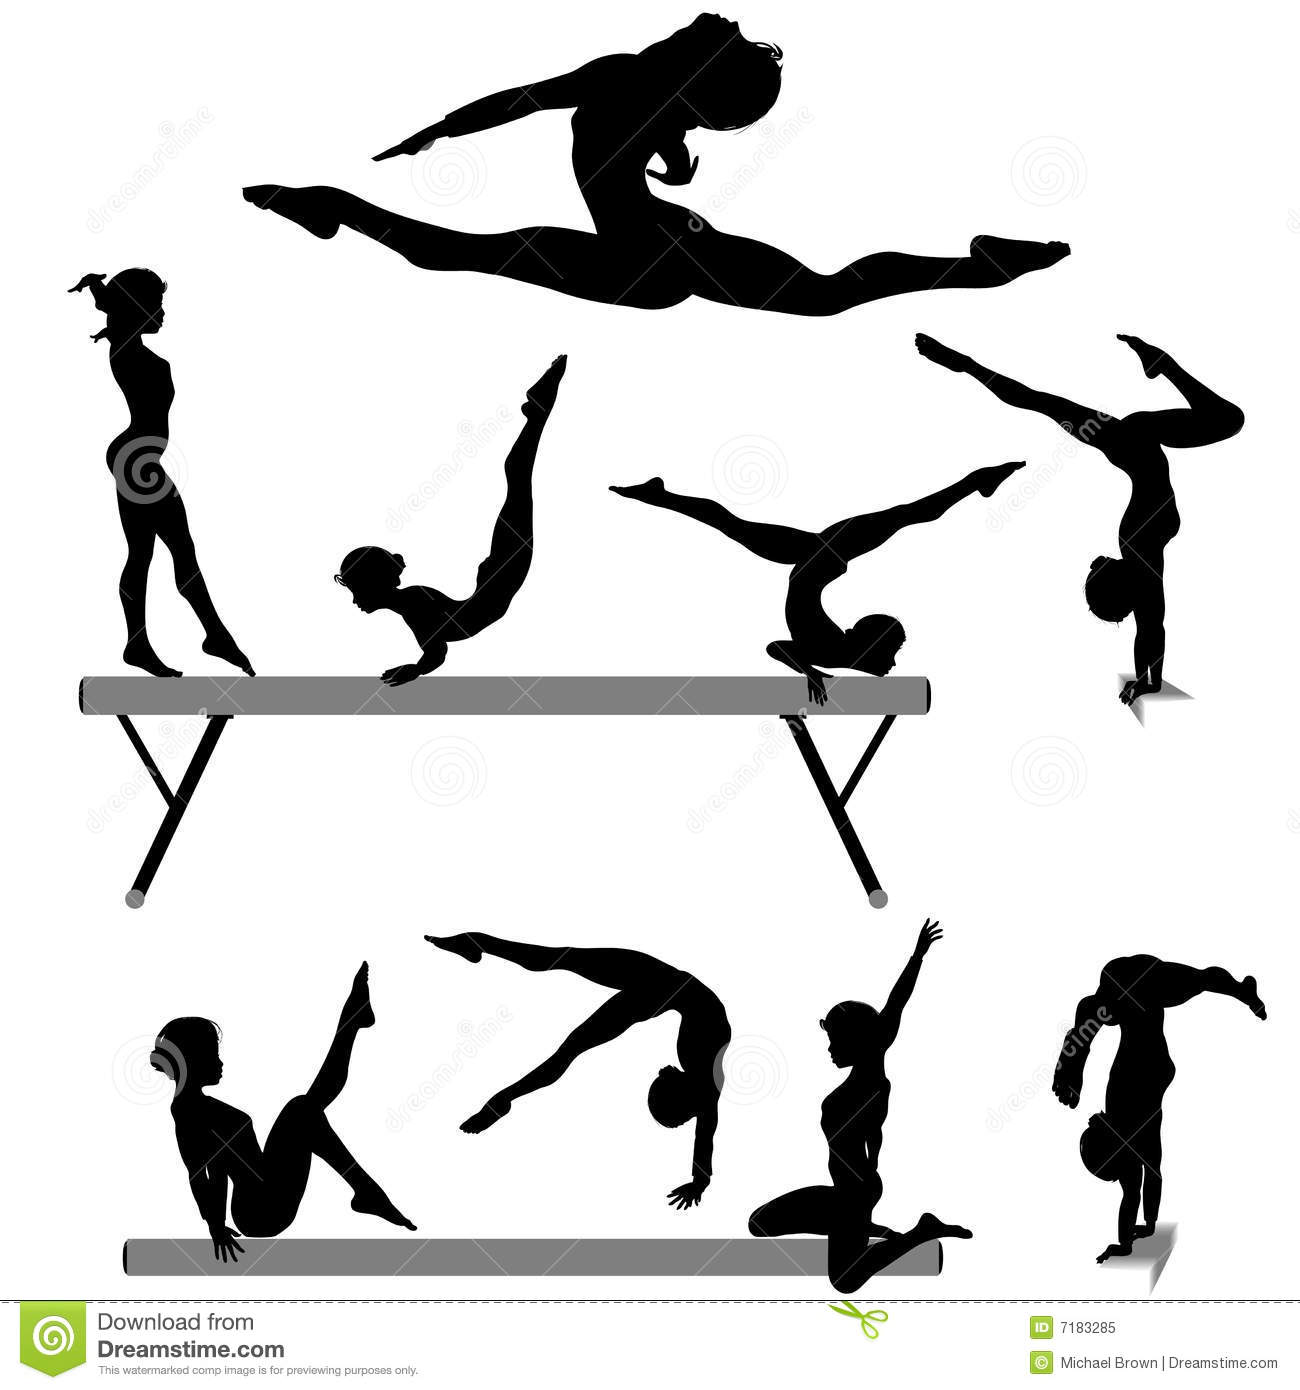 hand painted wall murals with gymnastics silhouettes - Google ...